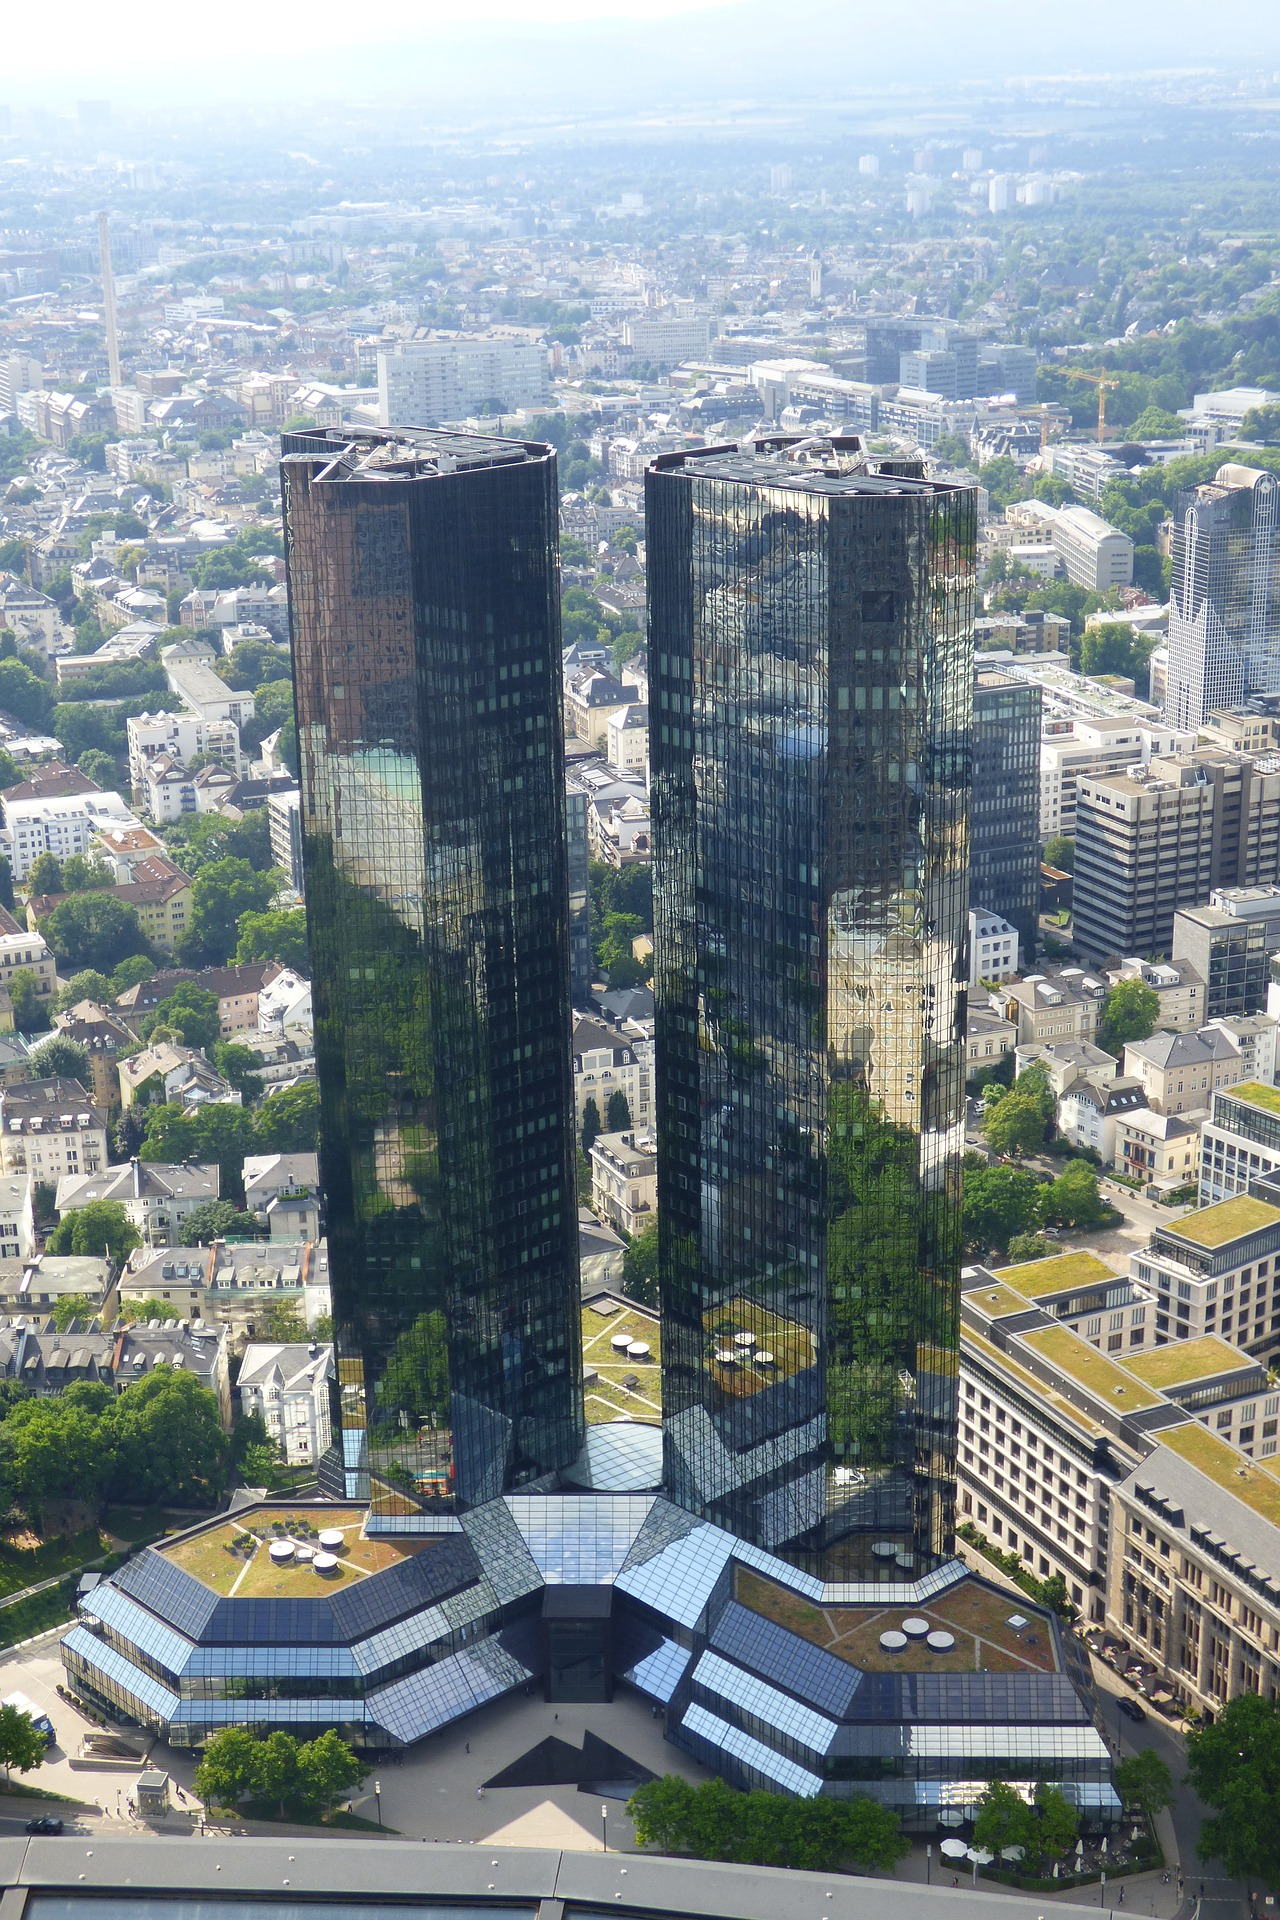 Deutsche Bank headquaters, Frankfurt, Germany